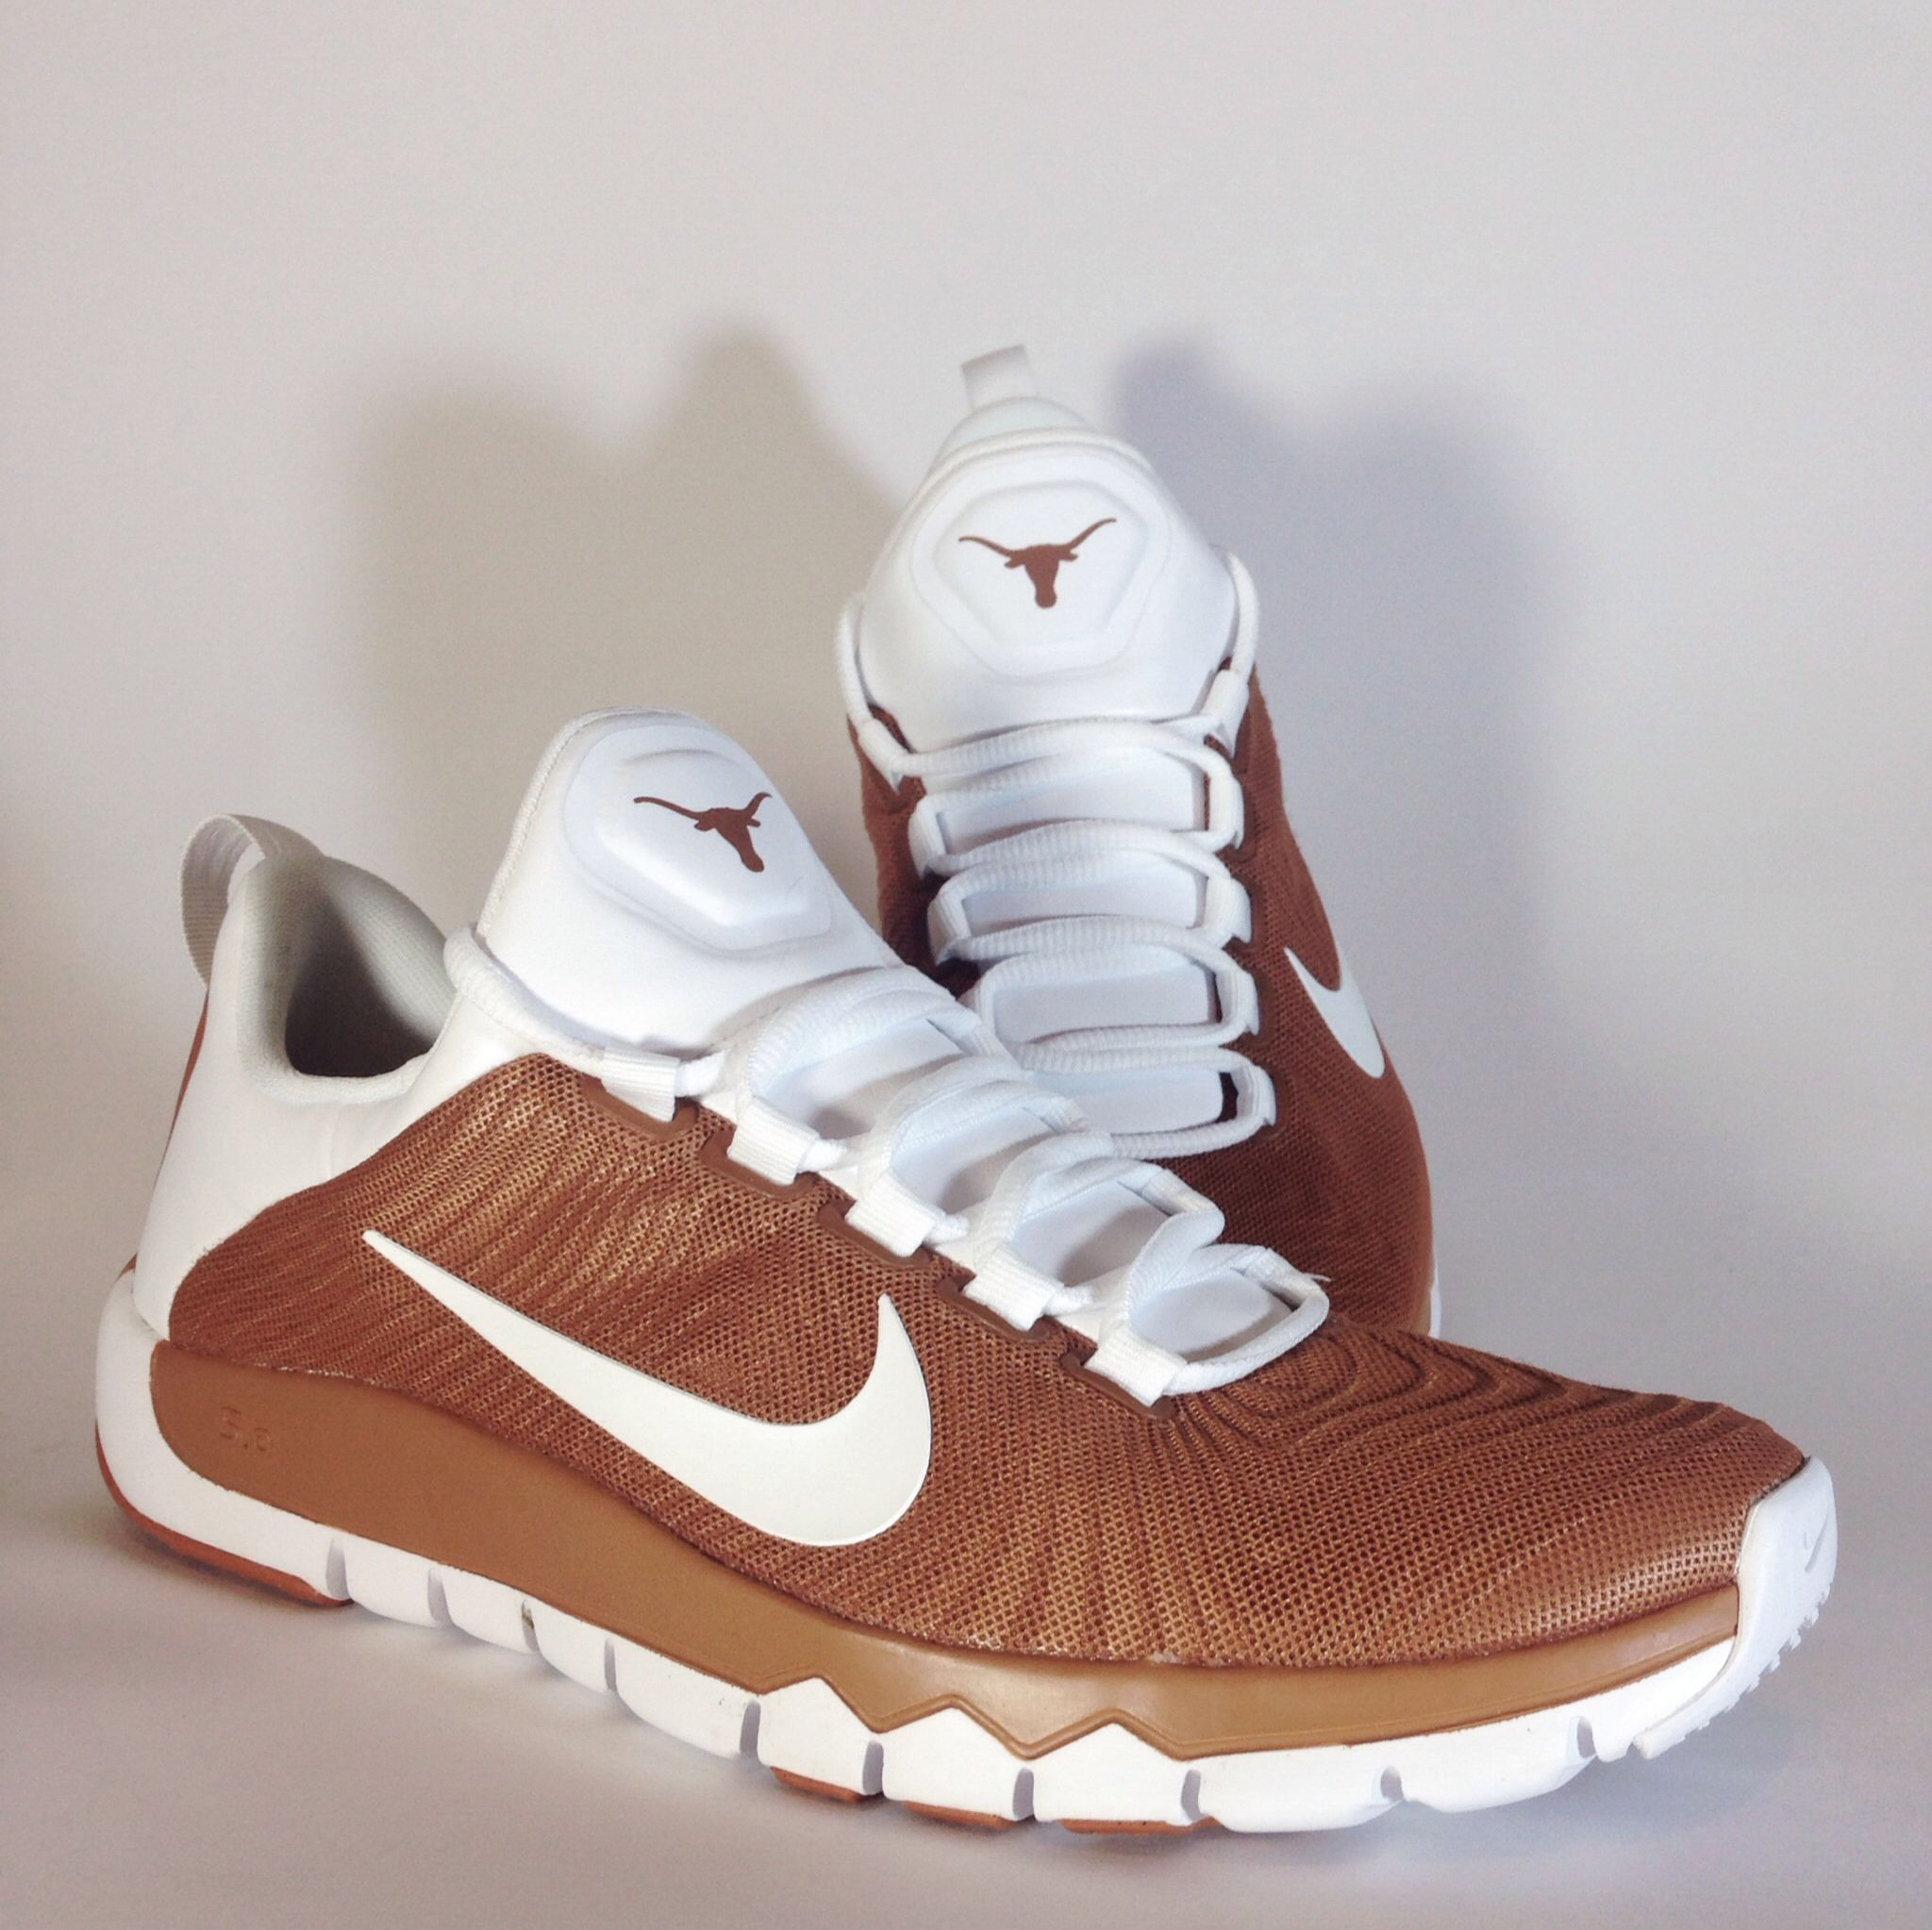 reputable site 80a67 ff295 Texas Longhorns Nike Free Trainer 5.0 TB